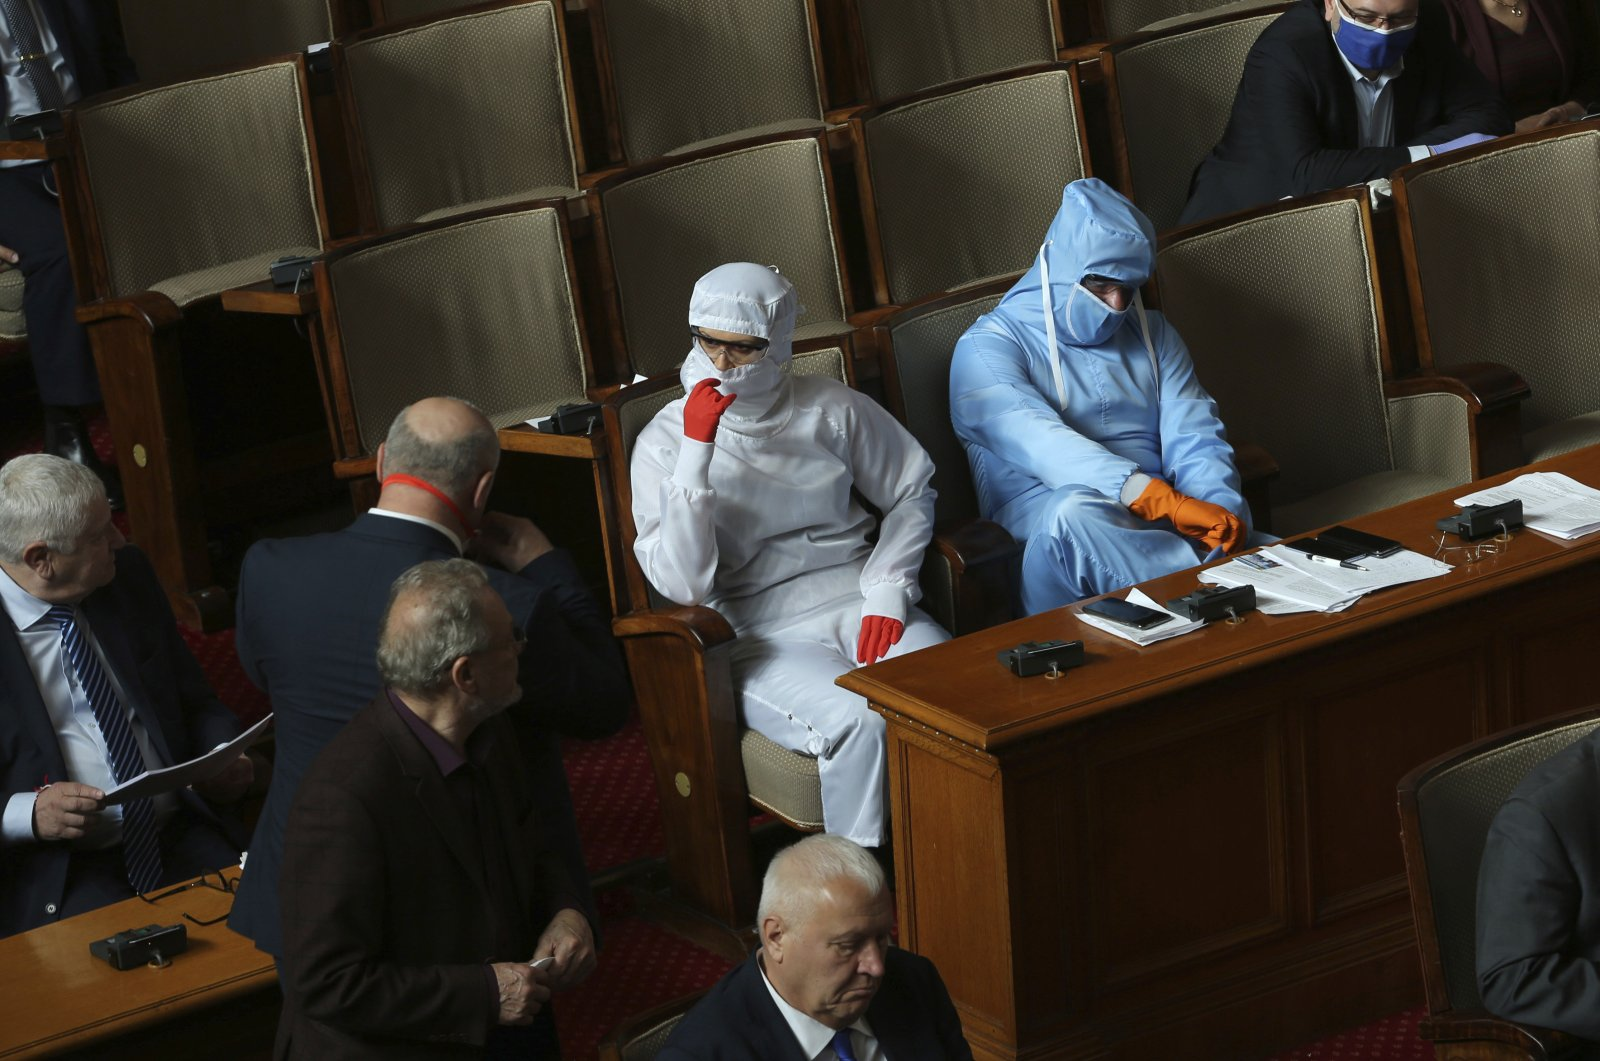 Vesselin Mareshki (R) leader of Bulgarian Political party Volya, and an MP from from his party wear protective suits during Parliamentary session in the Bulgarian National Assembly in Sofia, Bulgaria, March 20, 2020. (AP Photo)